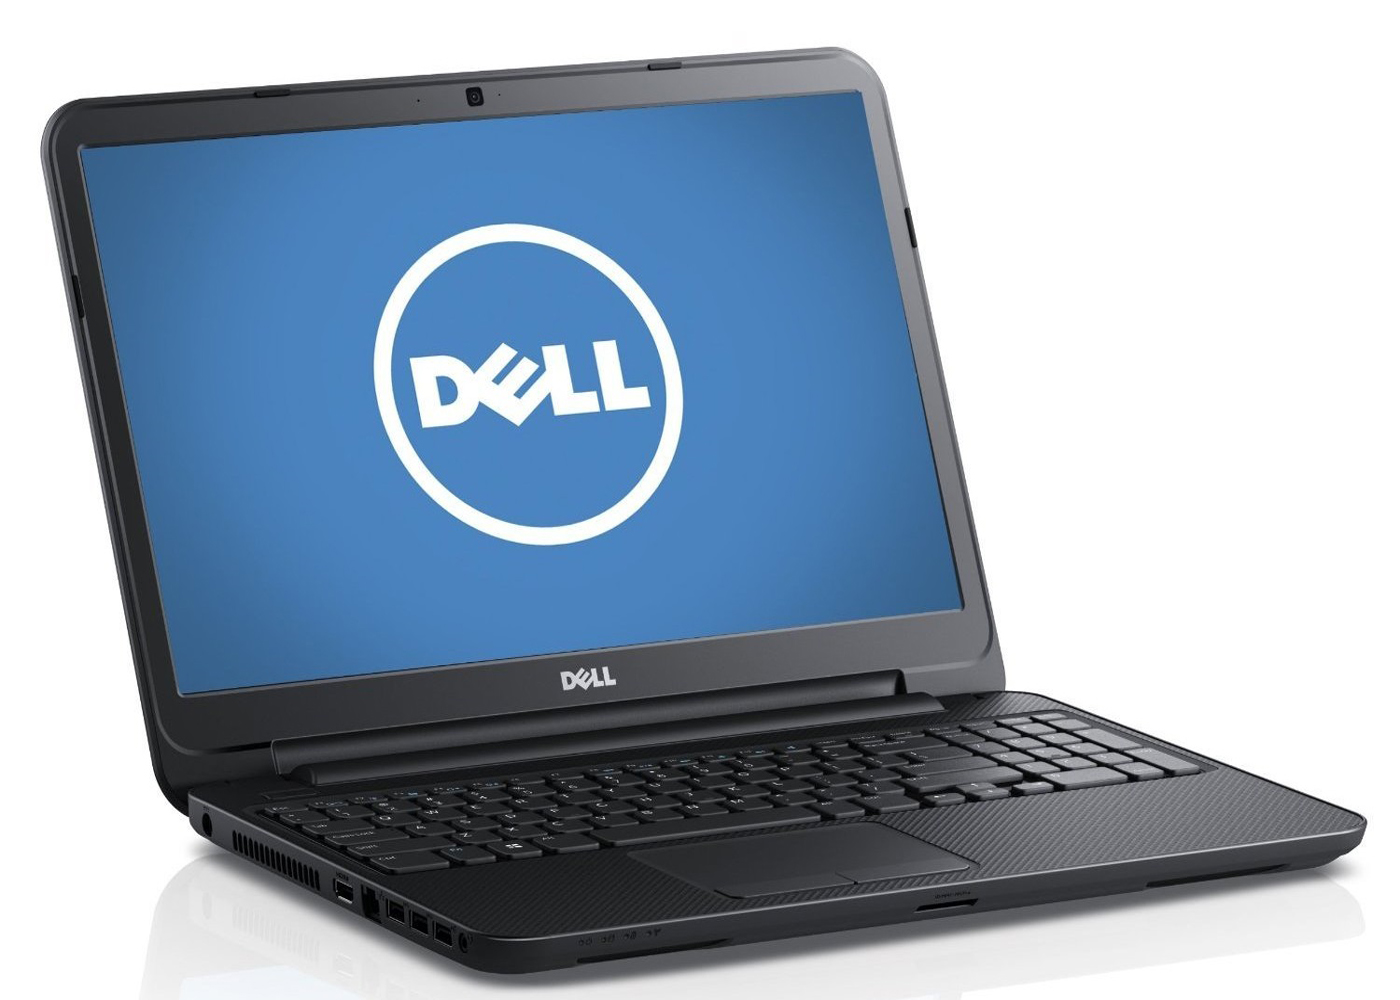 About the Dell Inspiron 15 3521 15.6inch Laptop Black Features and